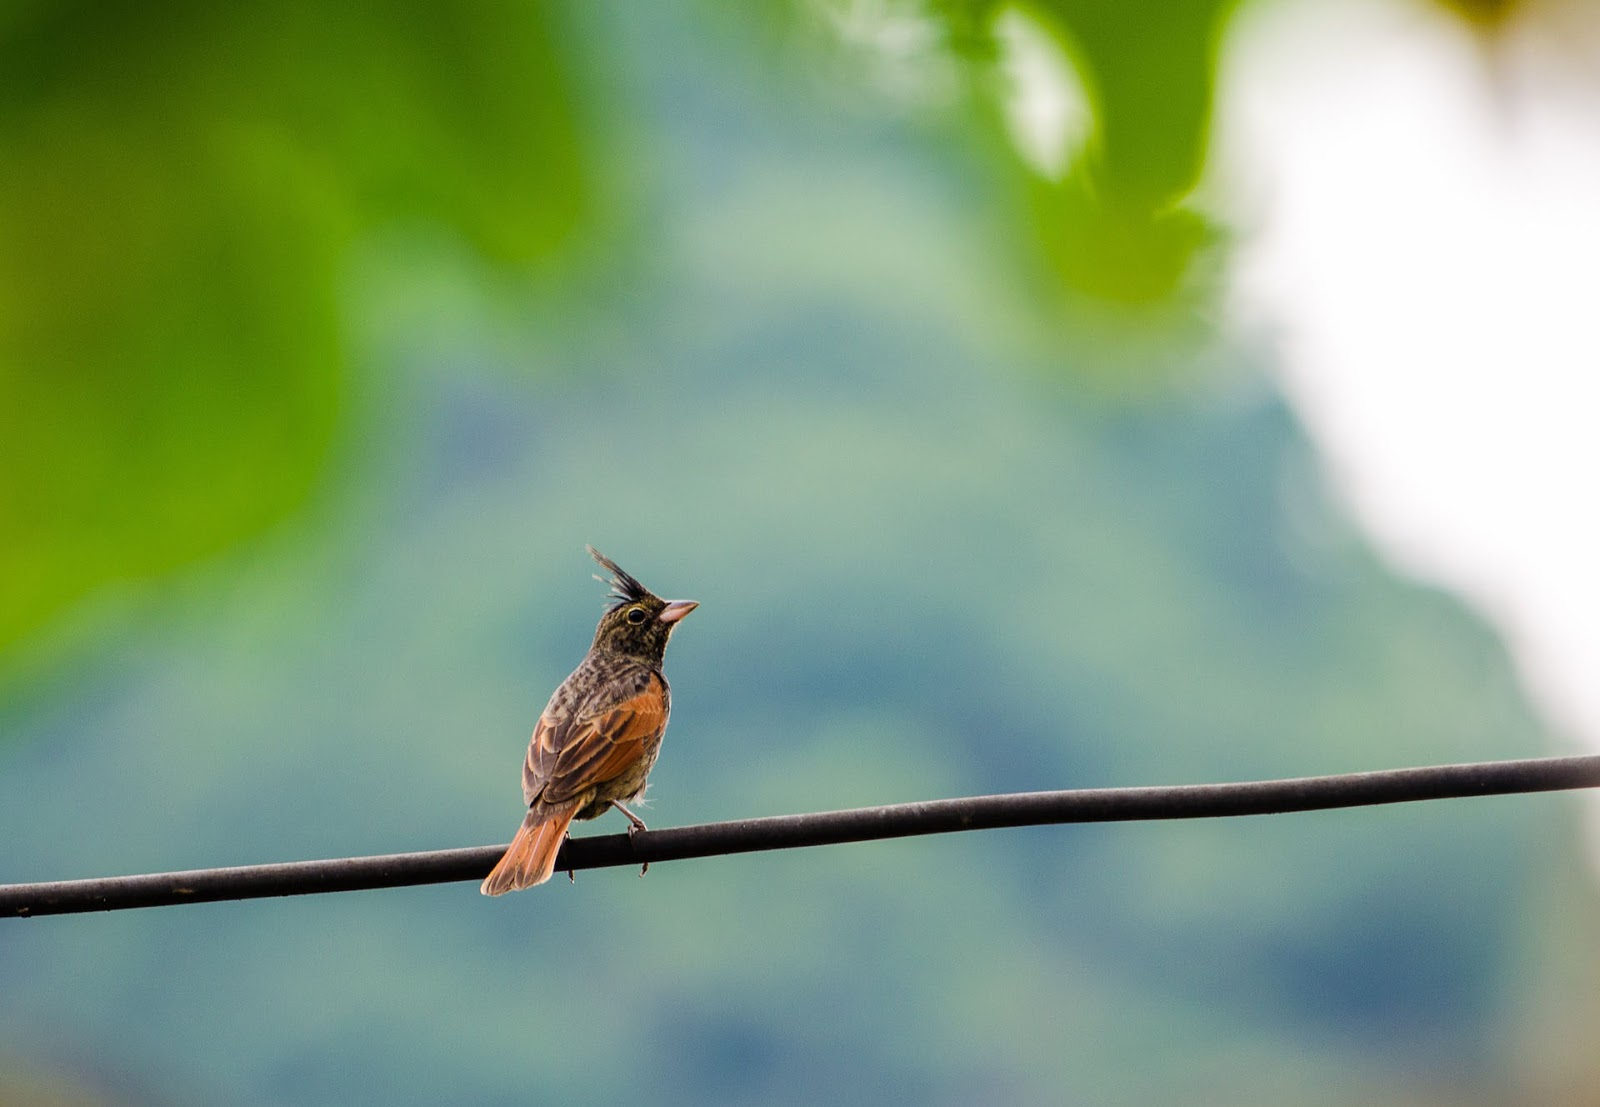 Crested Bunting image xhaami